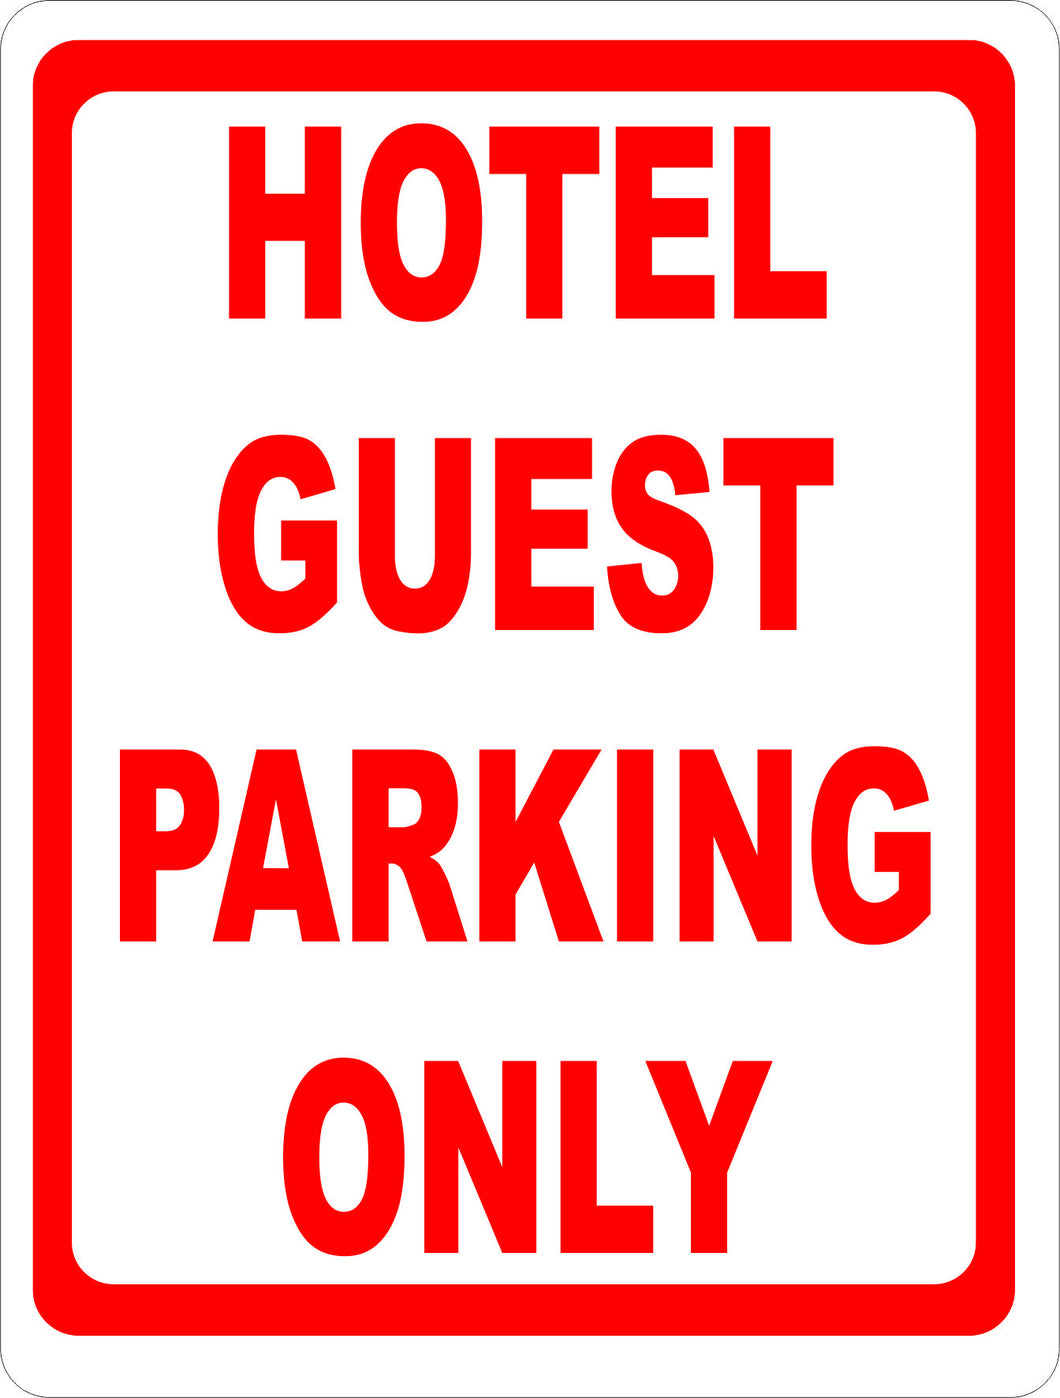 Hotel Guest Parking Only Sign - Signs & Decals by SalaGraphics